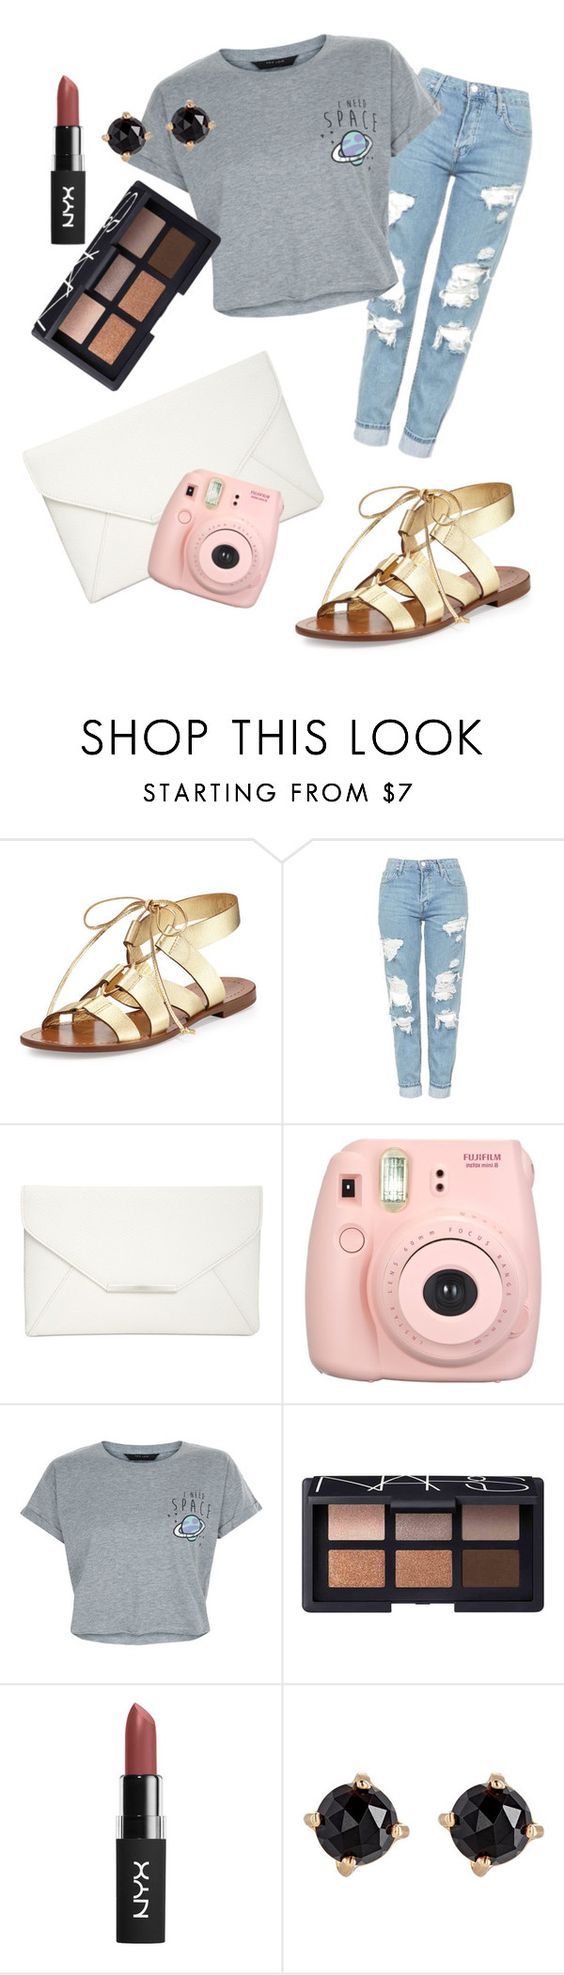 """gold sandals"" by cpobenshain ❤ liked on Polyvore featuring Kate Spade, Topshop, Style & Co., Fujifilm, New Look, NARS Cosmetics and Irene Neuwirth"